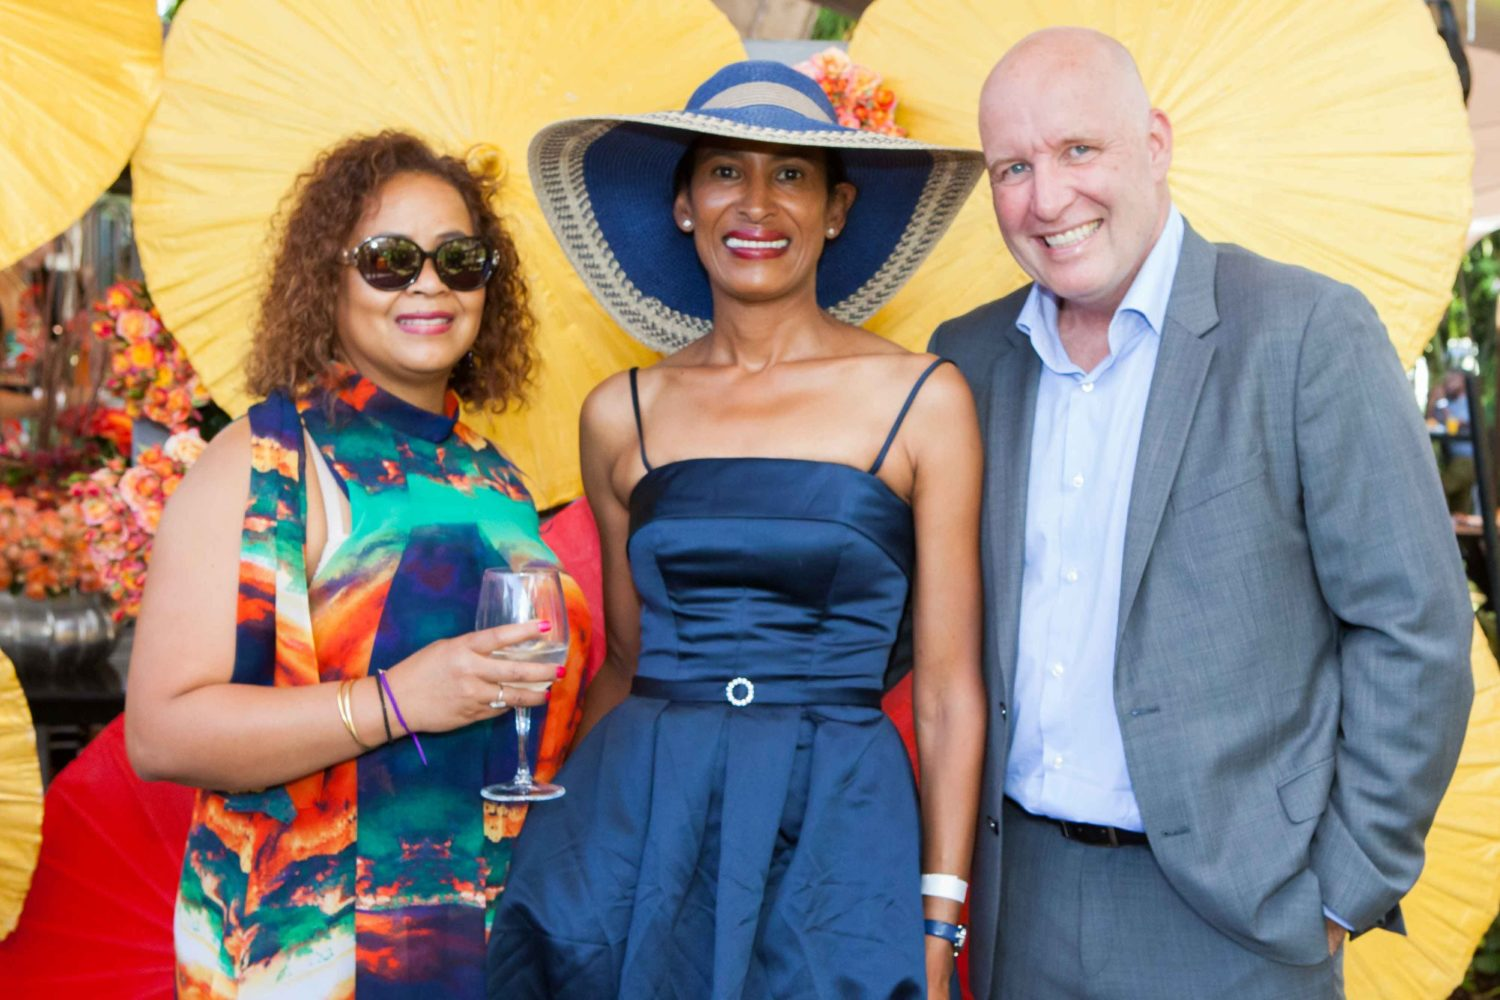 Silvia Njoki, Diana Opoti, Anita Nderu, Joy Kendi and All the Glamorous Guests at  2019's Nairobi Fashion High Tea